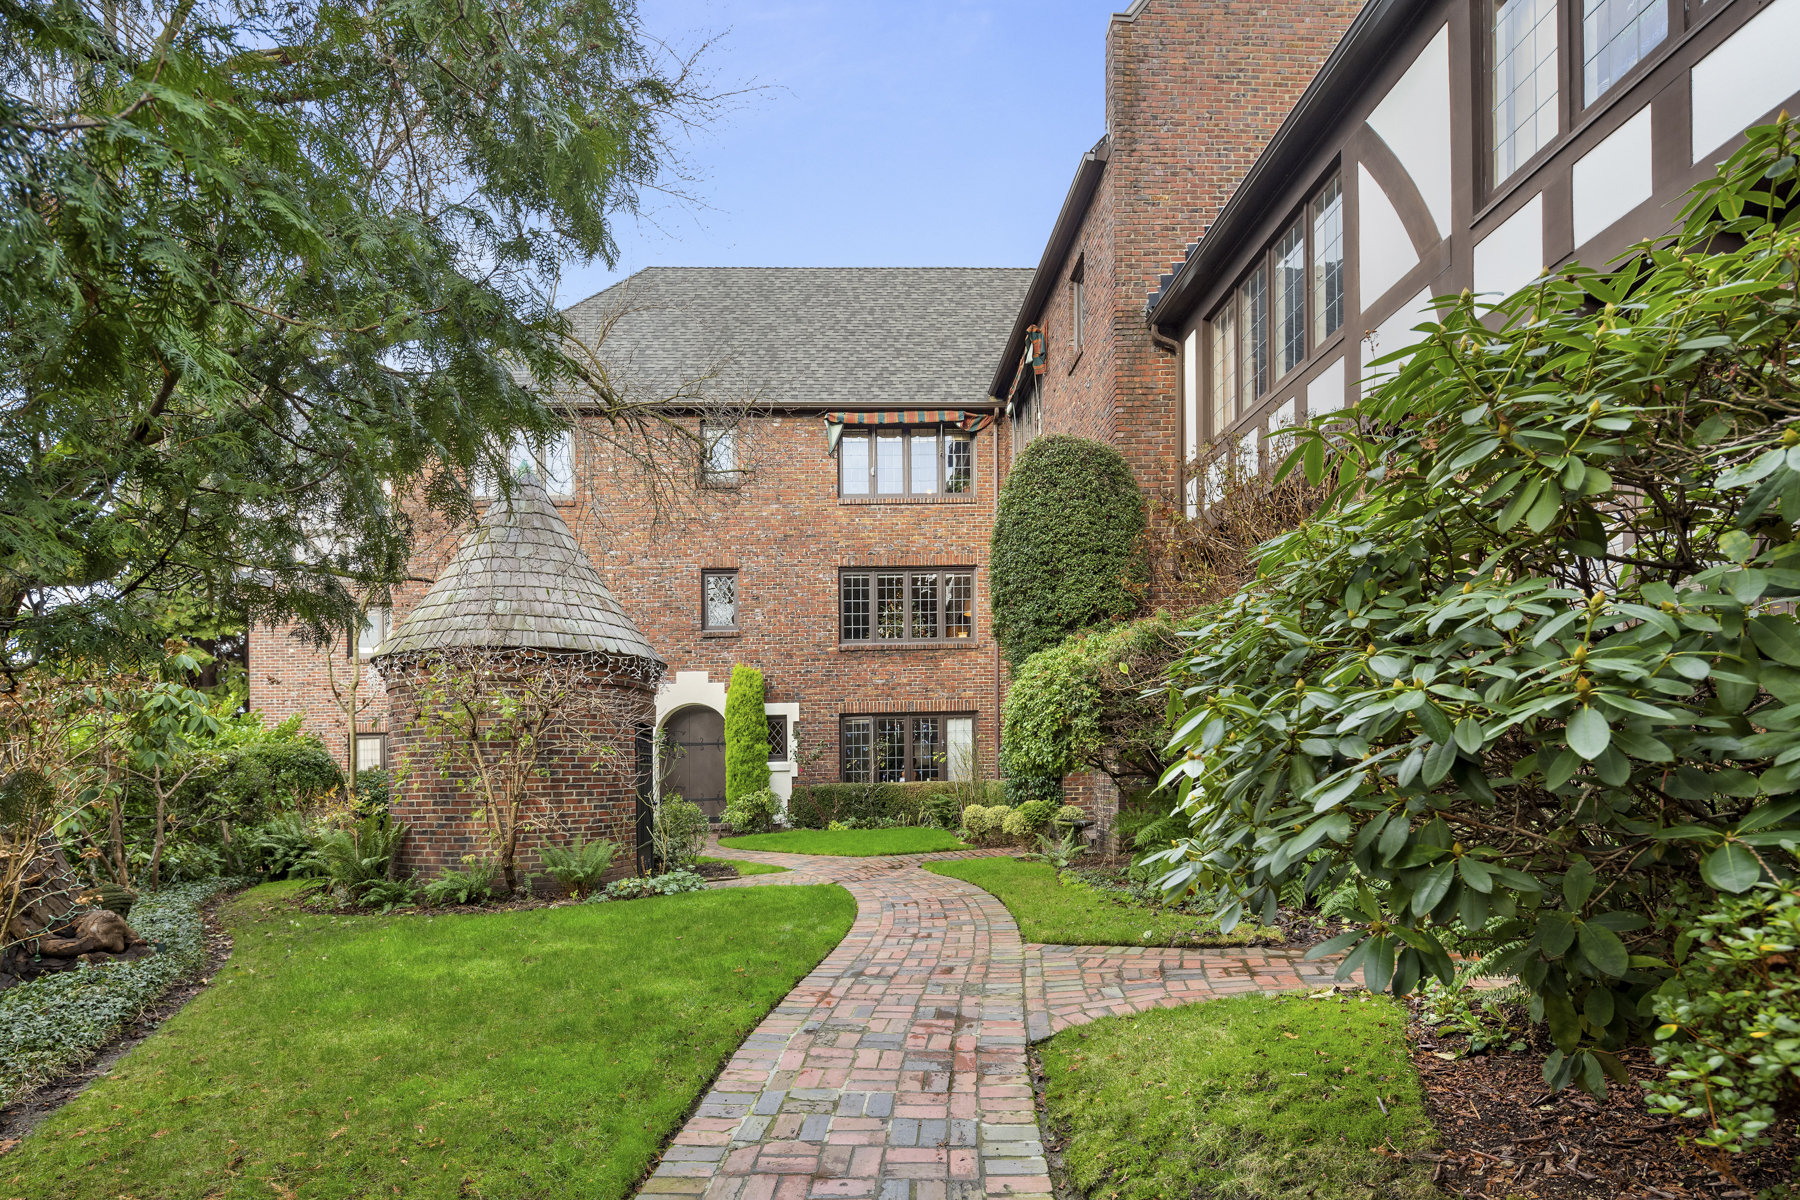 This condo lets you live in a castle on Seattle's Capitol Hill for $625K